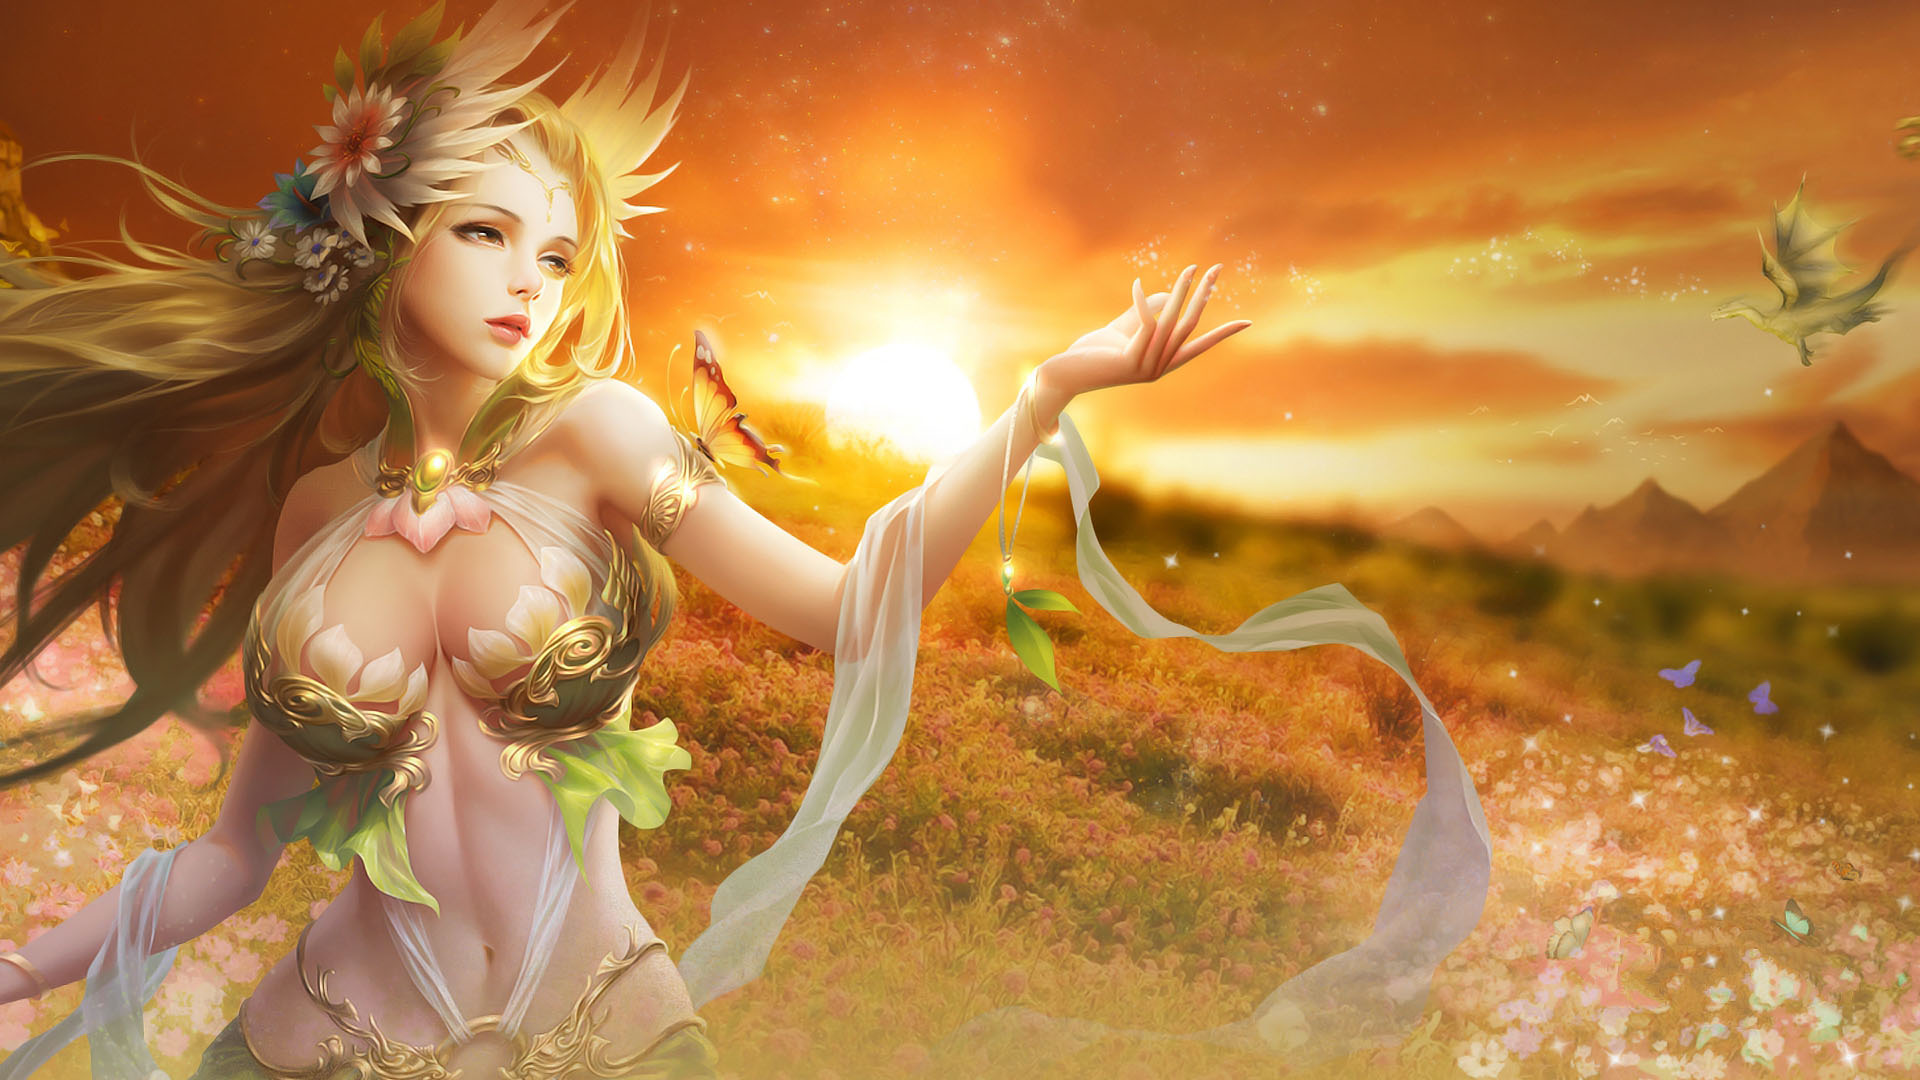 Fantasy Girl Hd Wallpapers Wallpaperscharlie 1920x1080